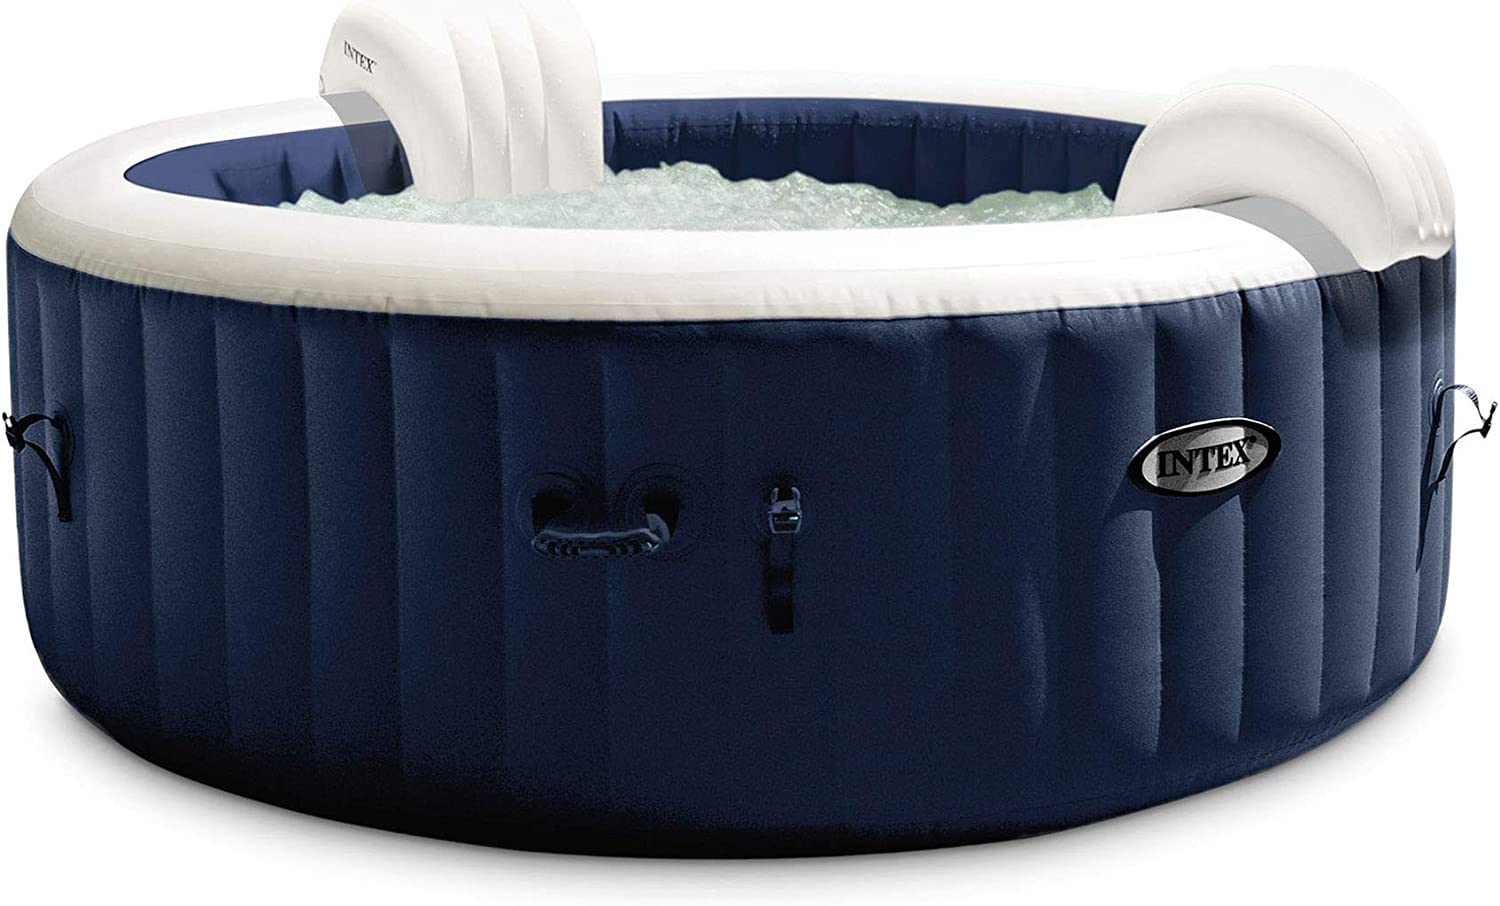 Intex 28429E PureSpa Plus 4 Person Portable Inflatable Hot Tub Spa with 140 Bubble Jets and Built in Heater Pump, Navy